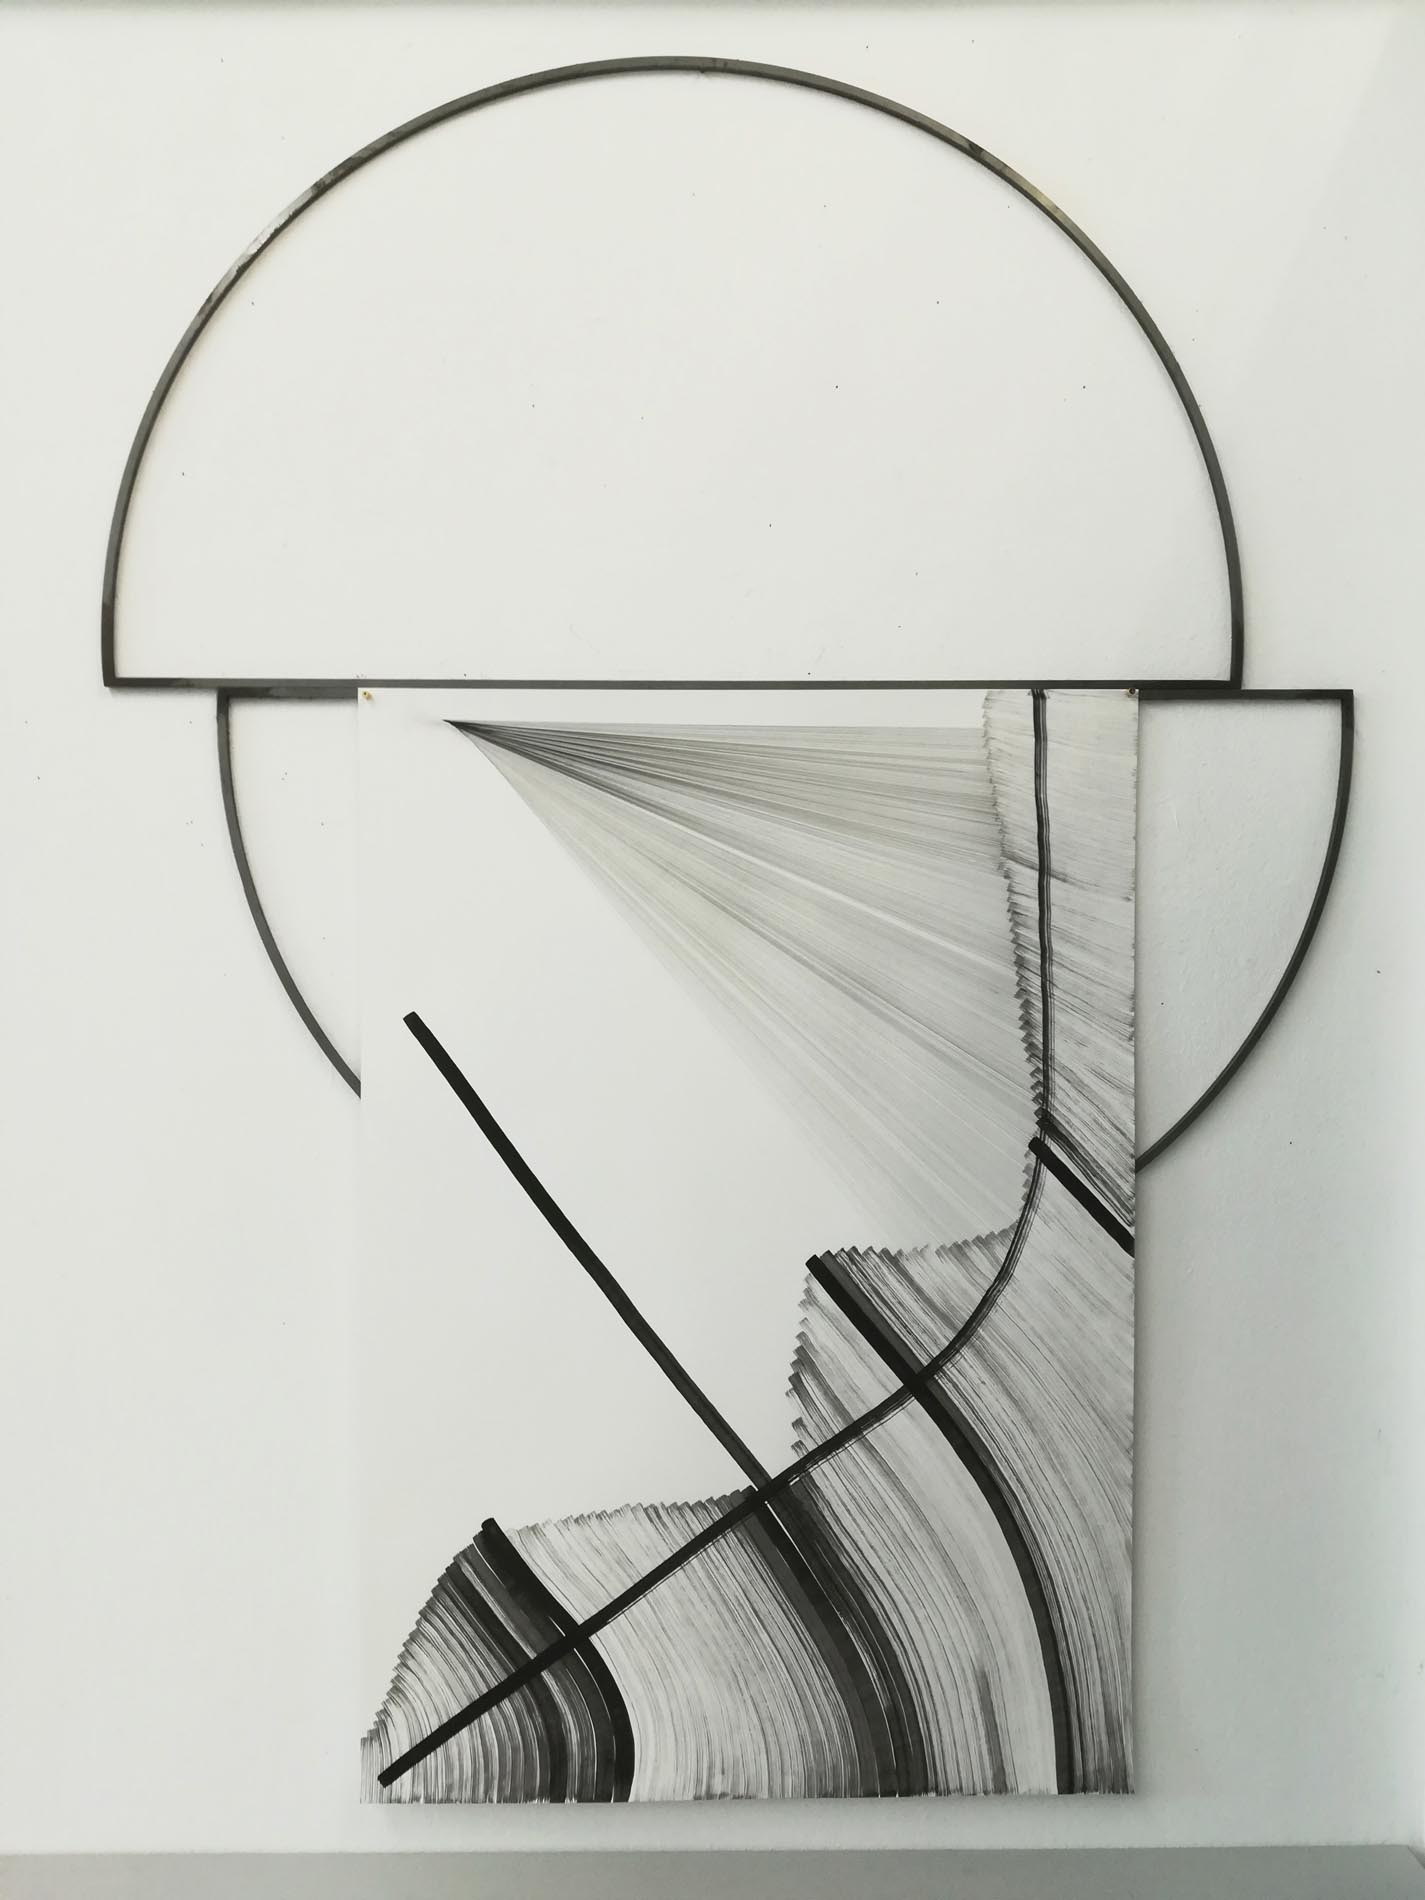 Nina Annabelle Maerkl, Typologies, 2018, ink and pencil on paper, 50 x 70 cm